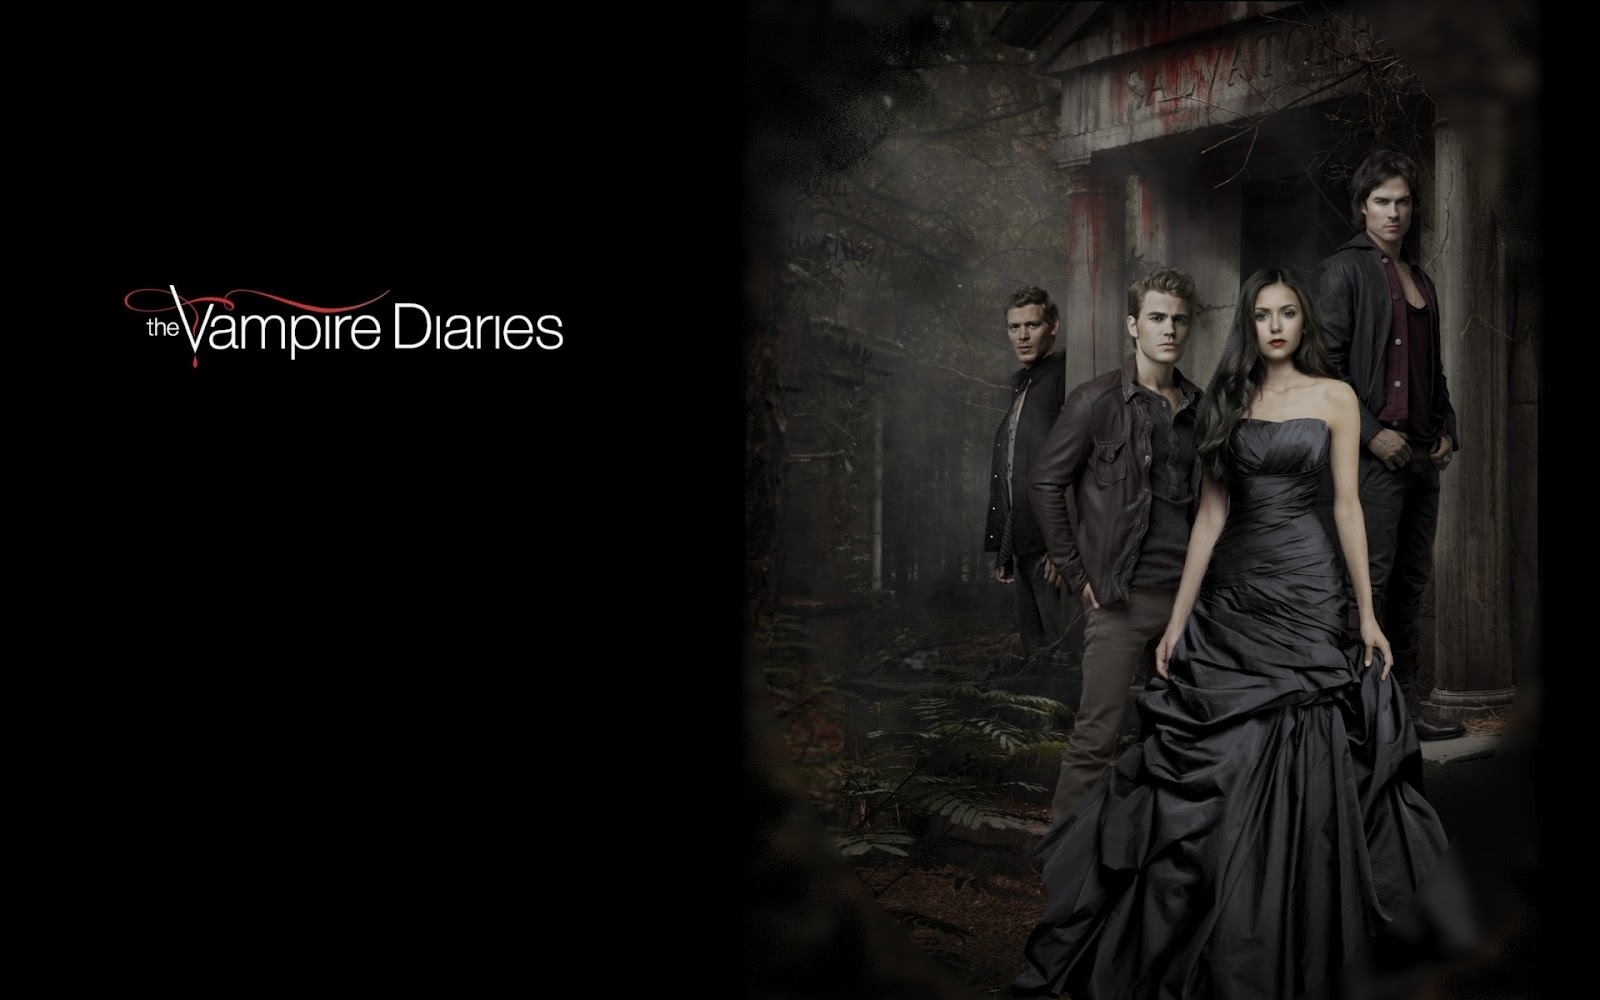 Wallpaper The Vampire Diaries: Eyesurfing: Vampire Diaries Wallpaper TV Series